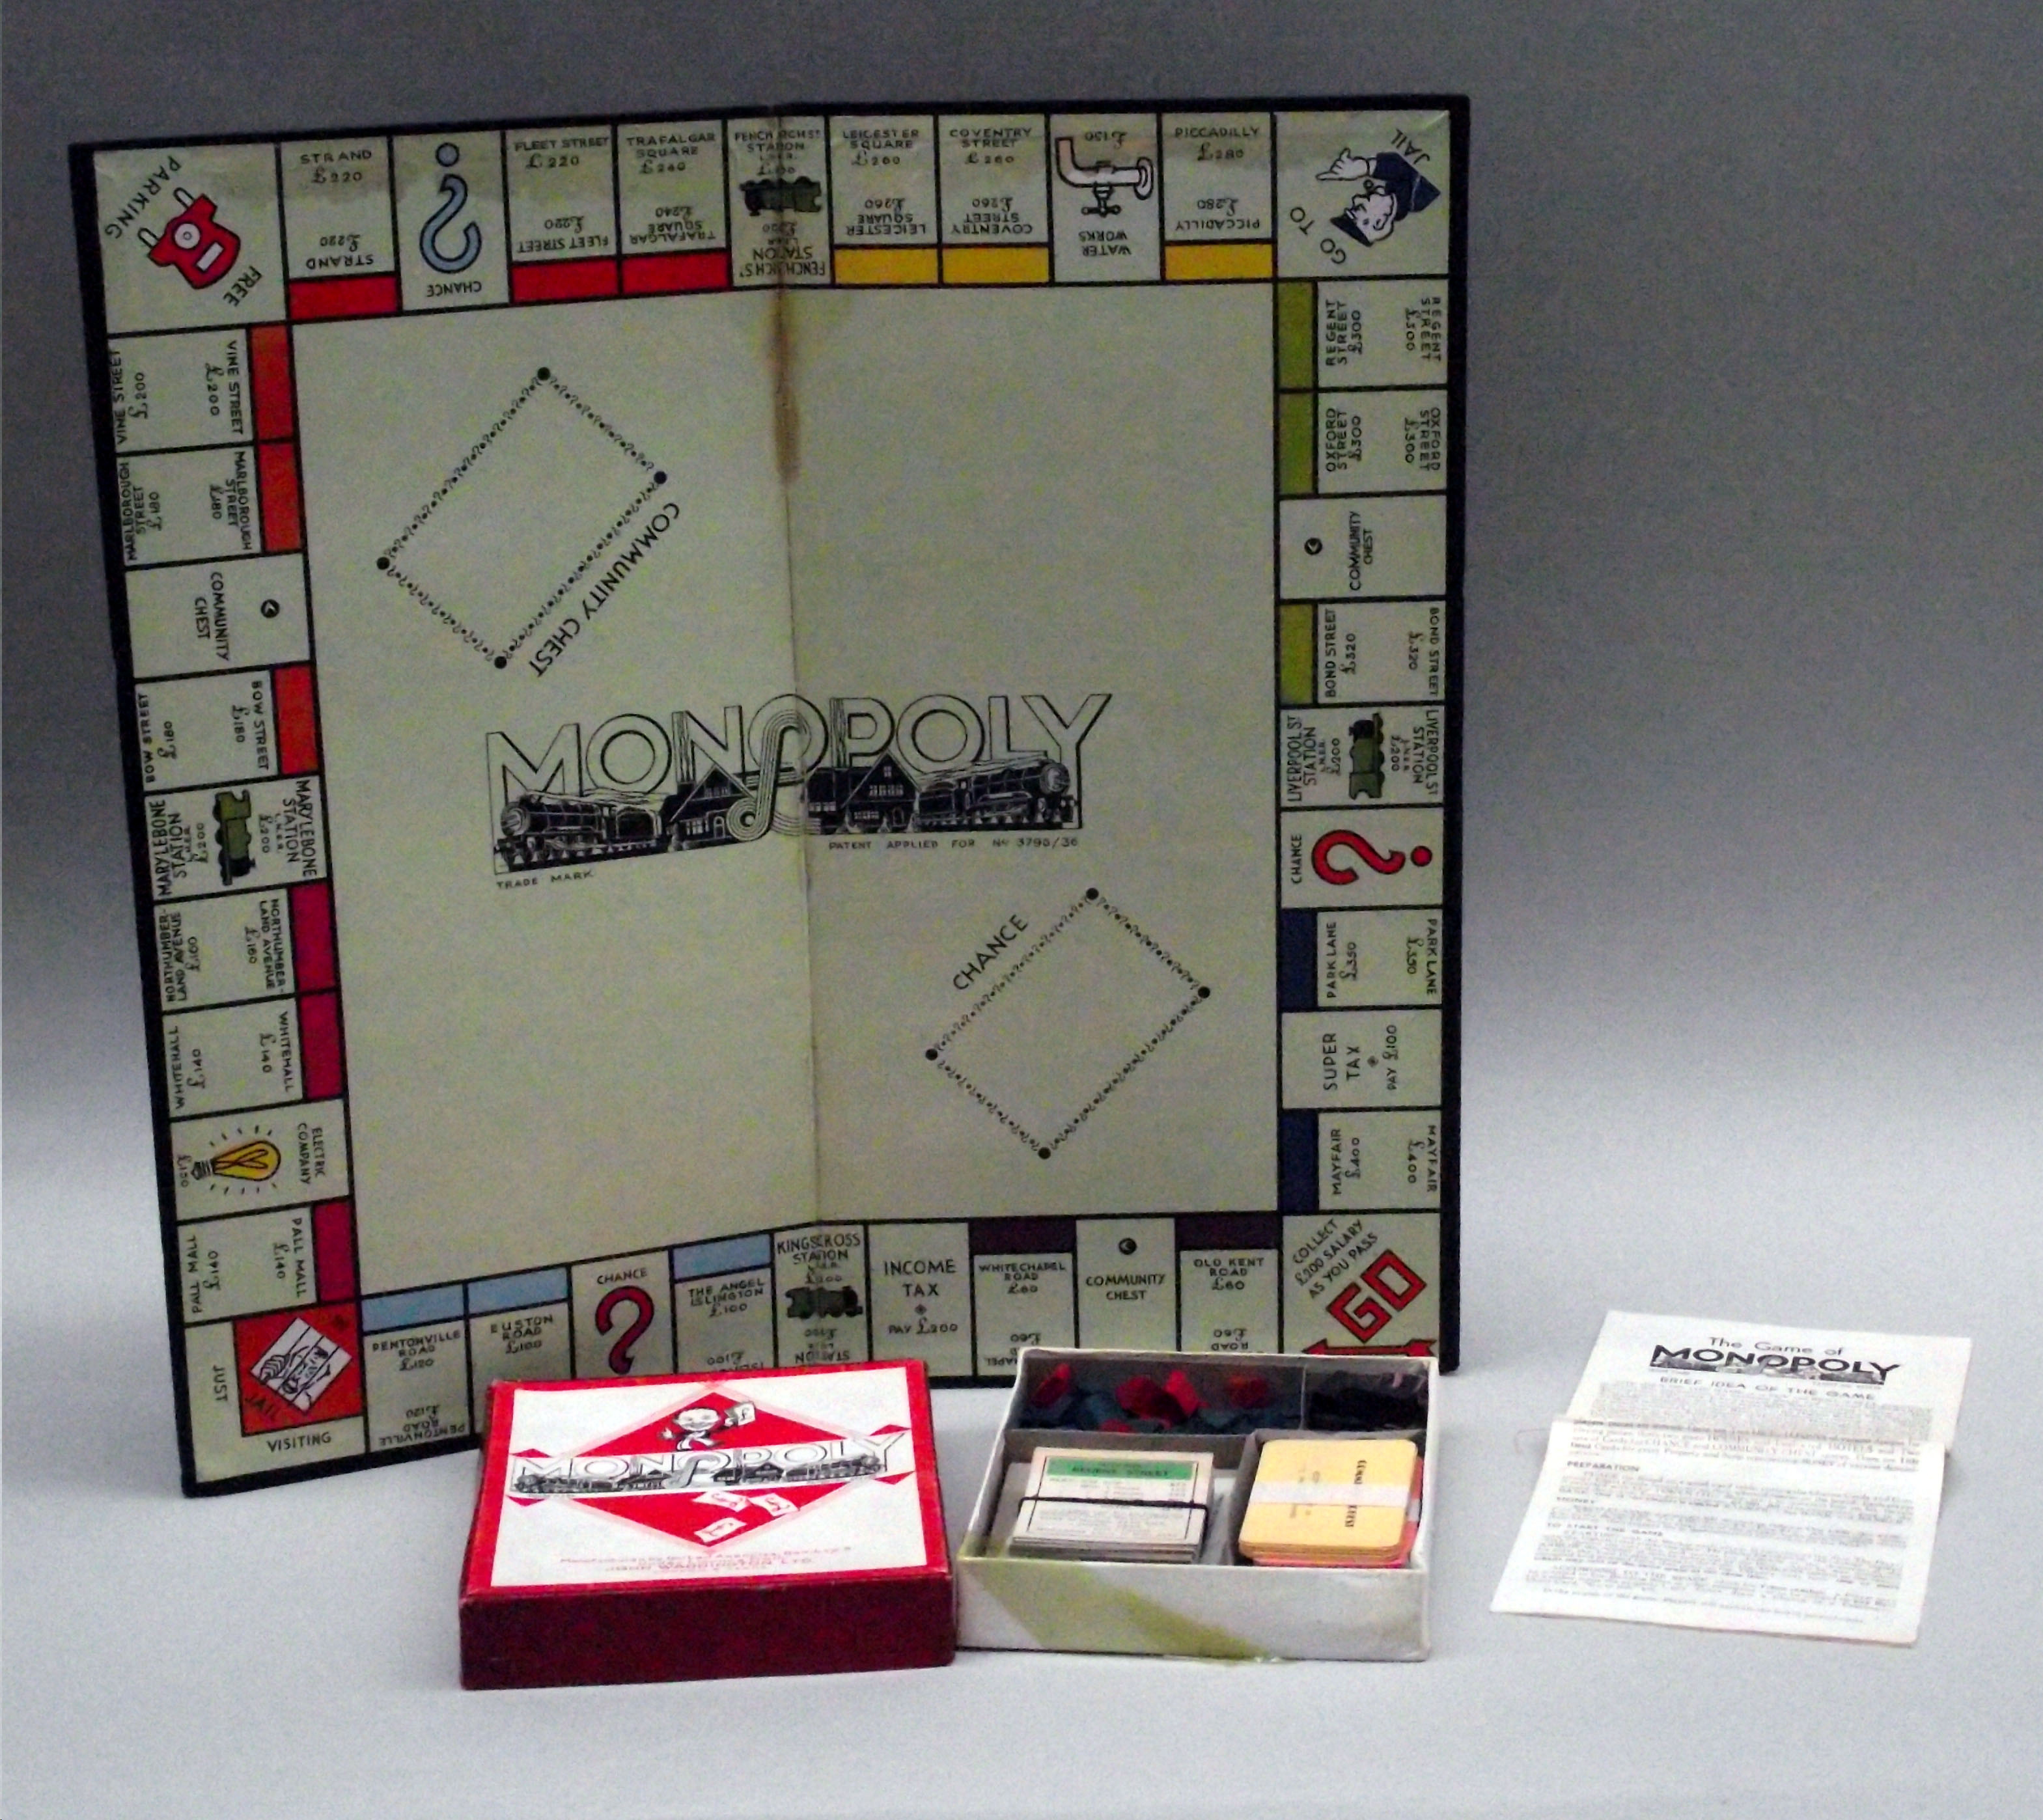 Colour photograph of a Monopoly board showing a smaller box with the cards and houses and hotels